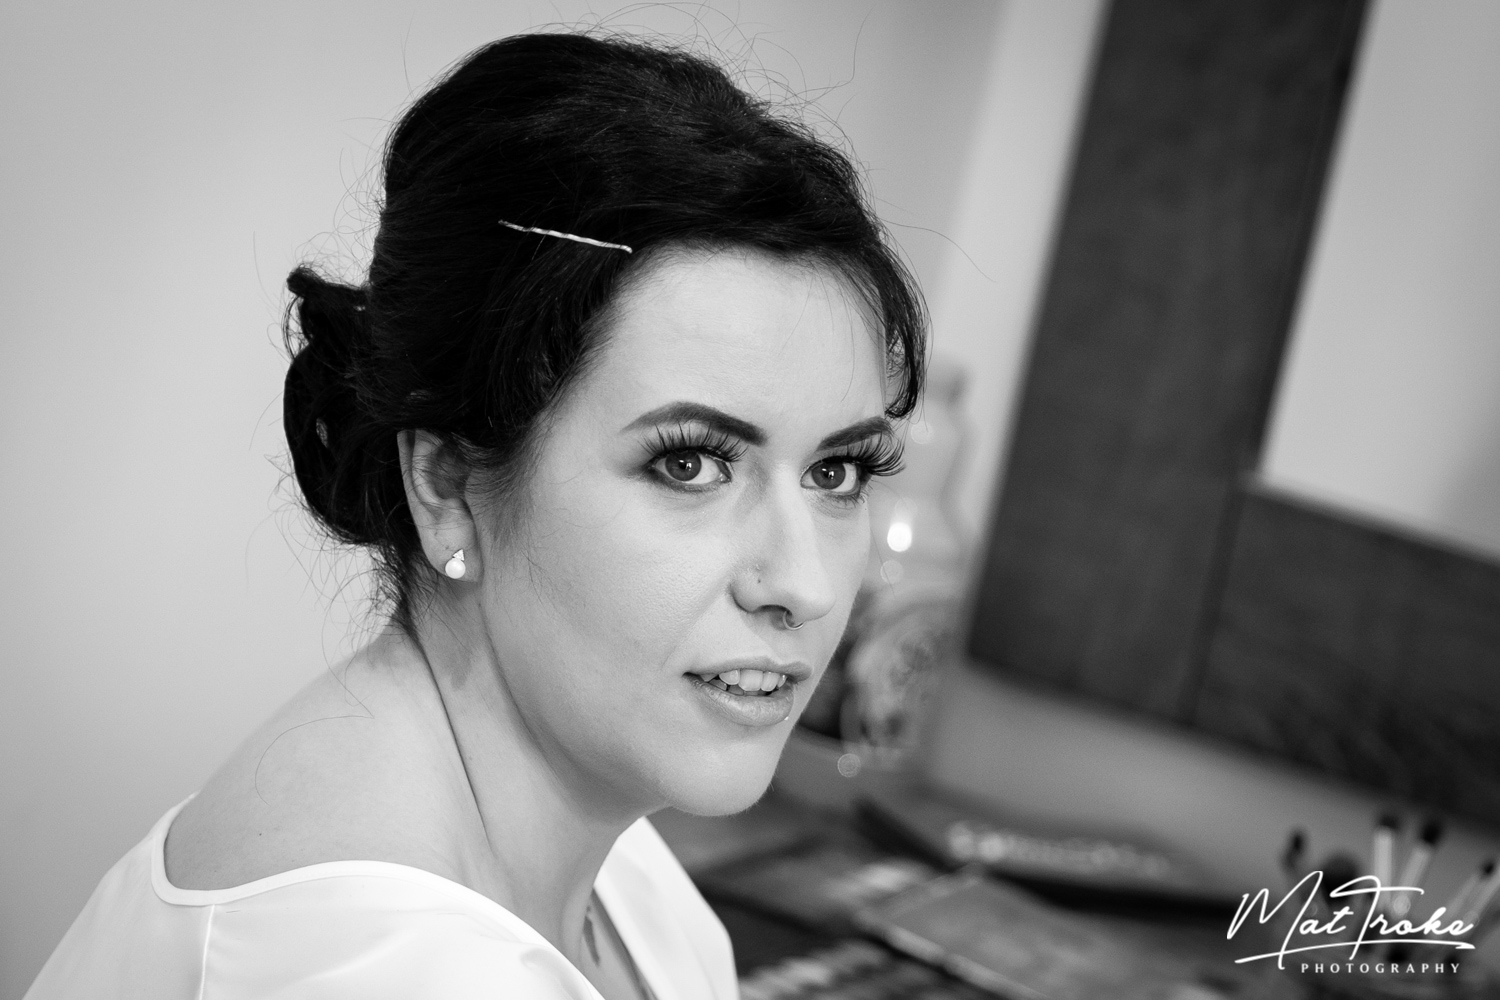 white-heart-inn-moorwood-alfreton-wedding-photographer-photography-sunset-venue-bridal-prep-makeup